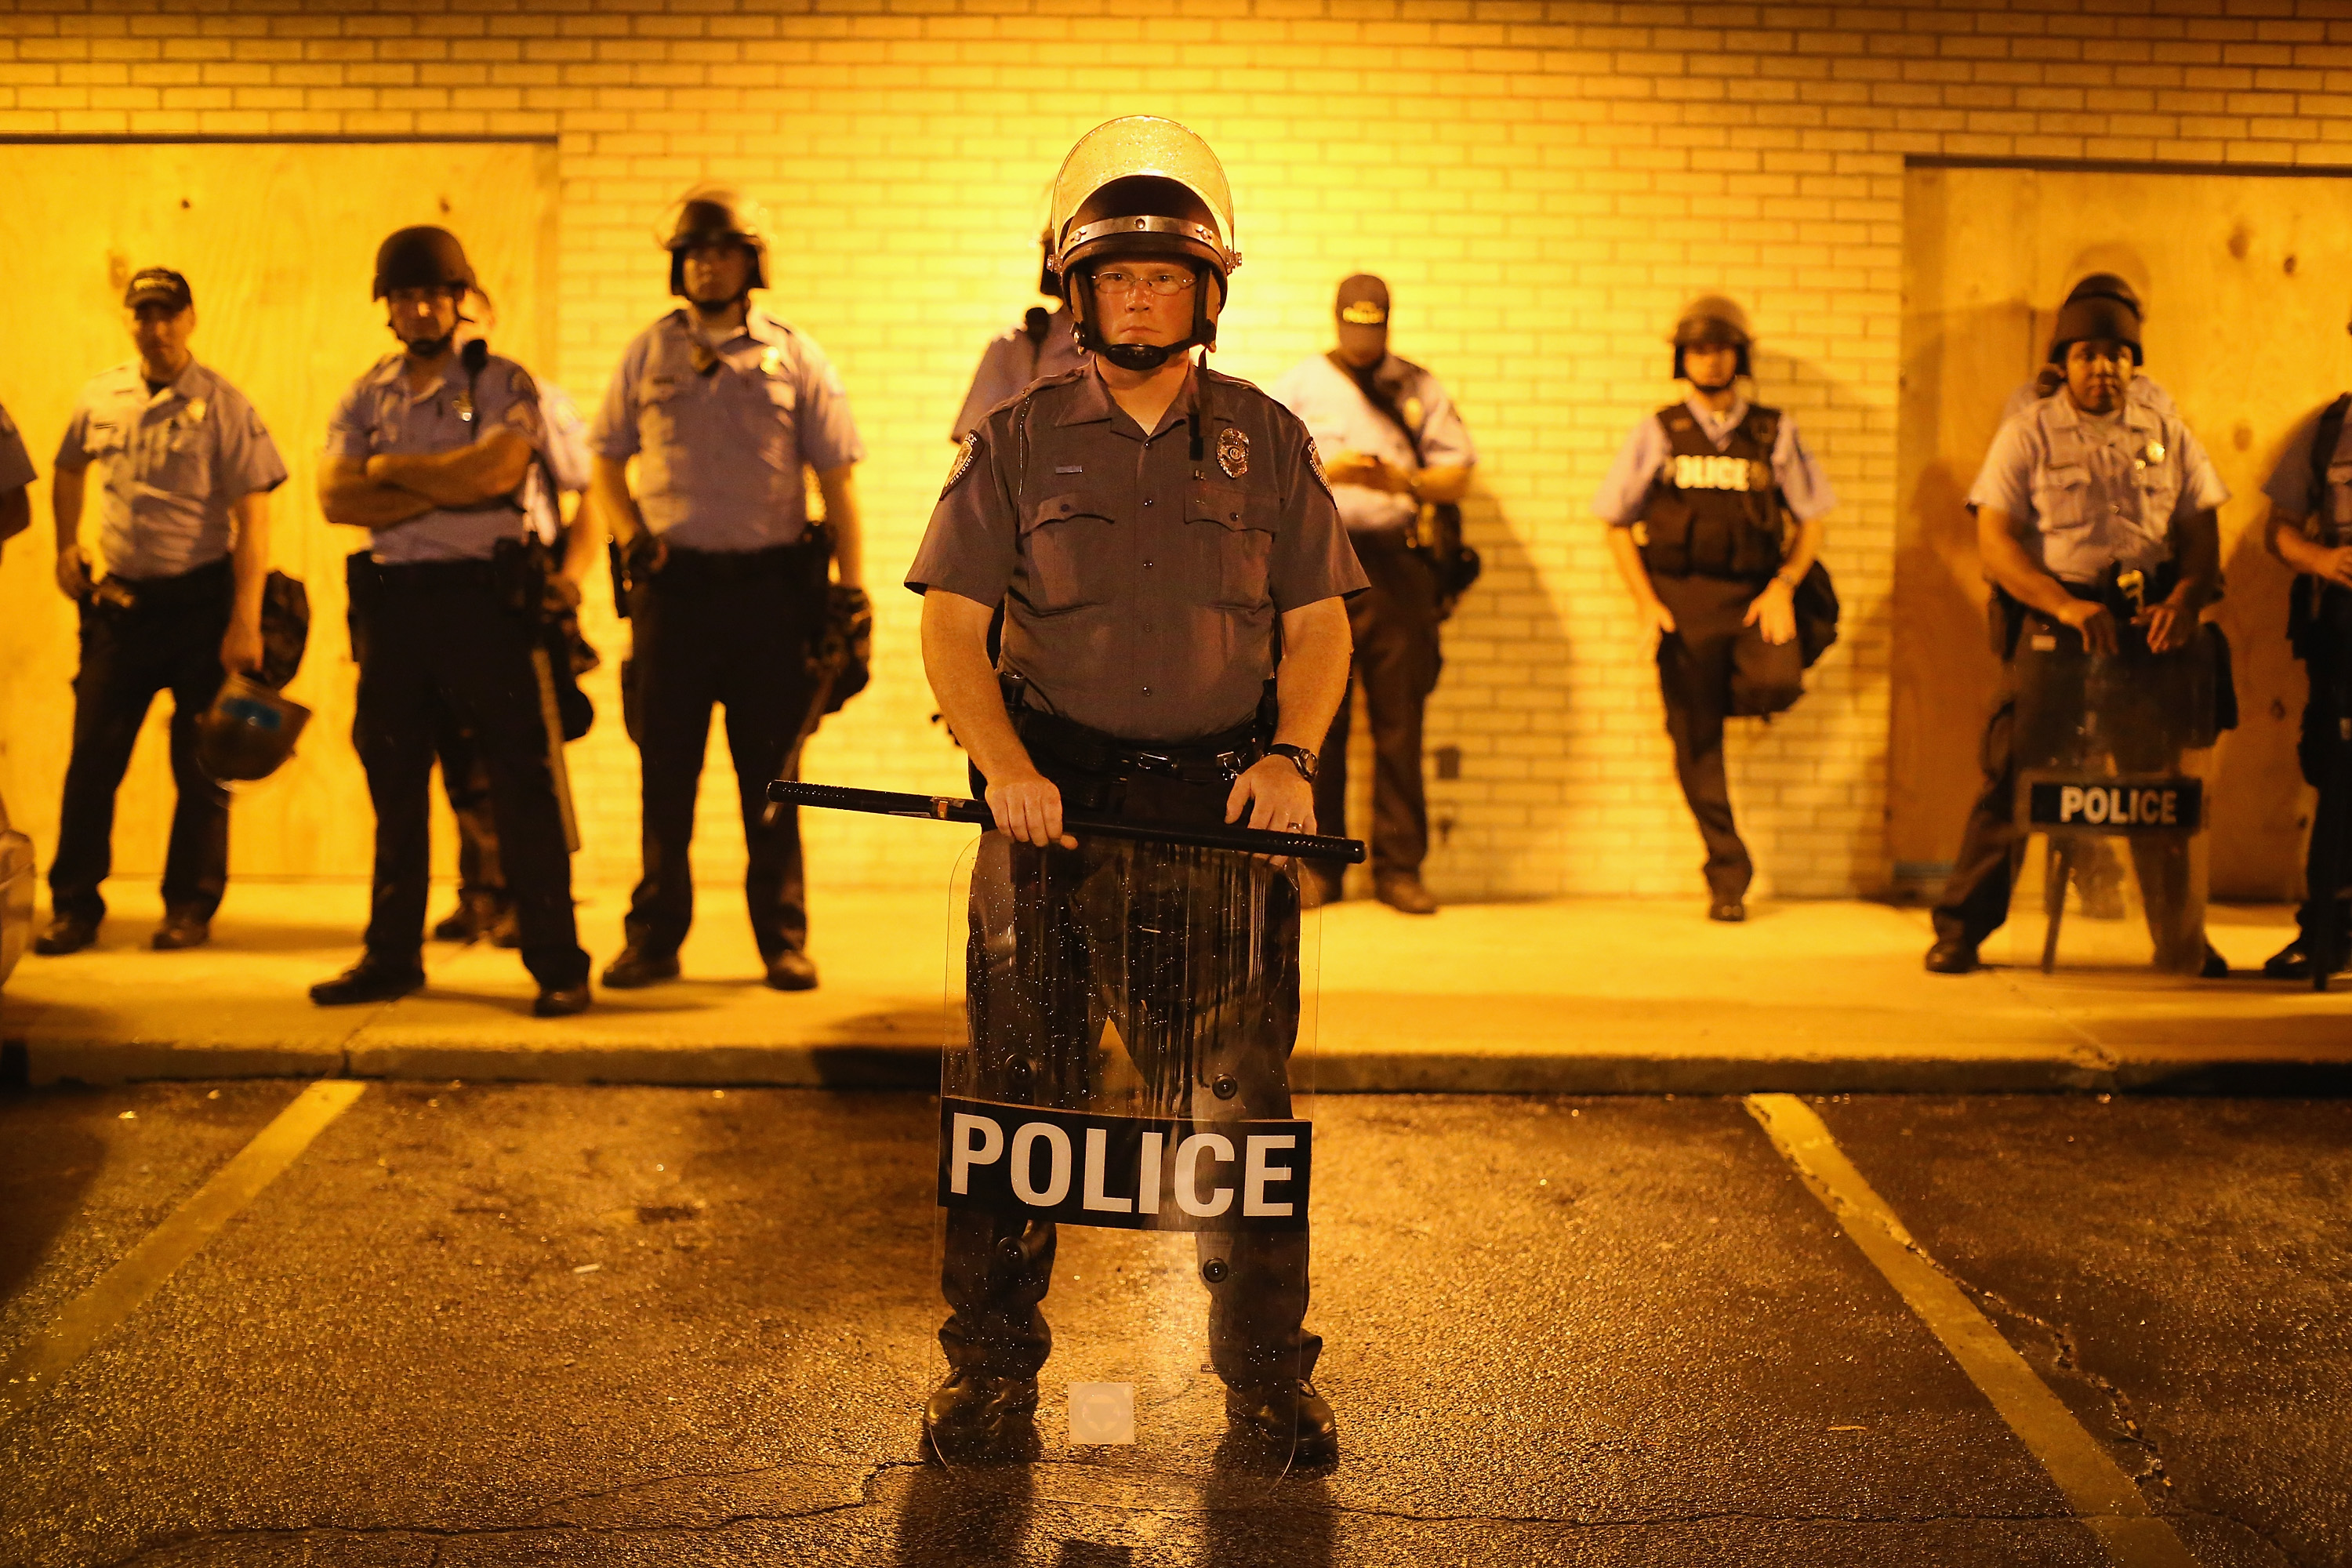 'Racist Police Officer' Stereotype May Become a Self-Fulfilling Prophecy